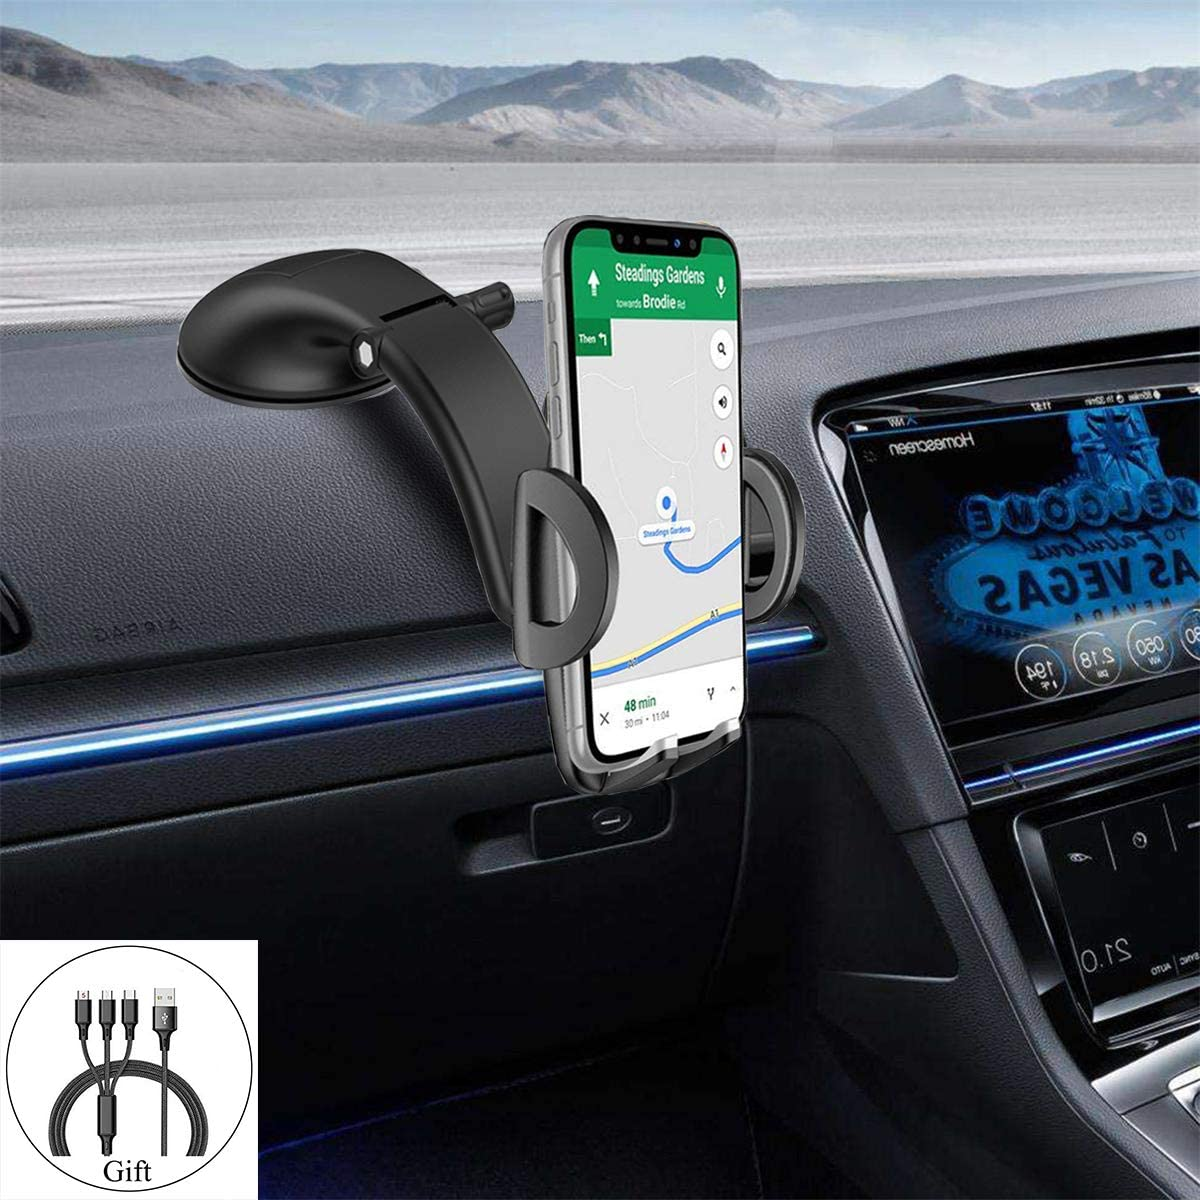 Give a Data Line MAOBLOG Car Phone Mount Dashboard Windshield Long Arm Strong Suction 360/° Car Holder Cradle Clamp for iPhone 11//11Pro Max//XR//X//8 //7Plus,Samsung Galaxy Note 10 Plus//10 9 8 .